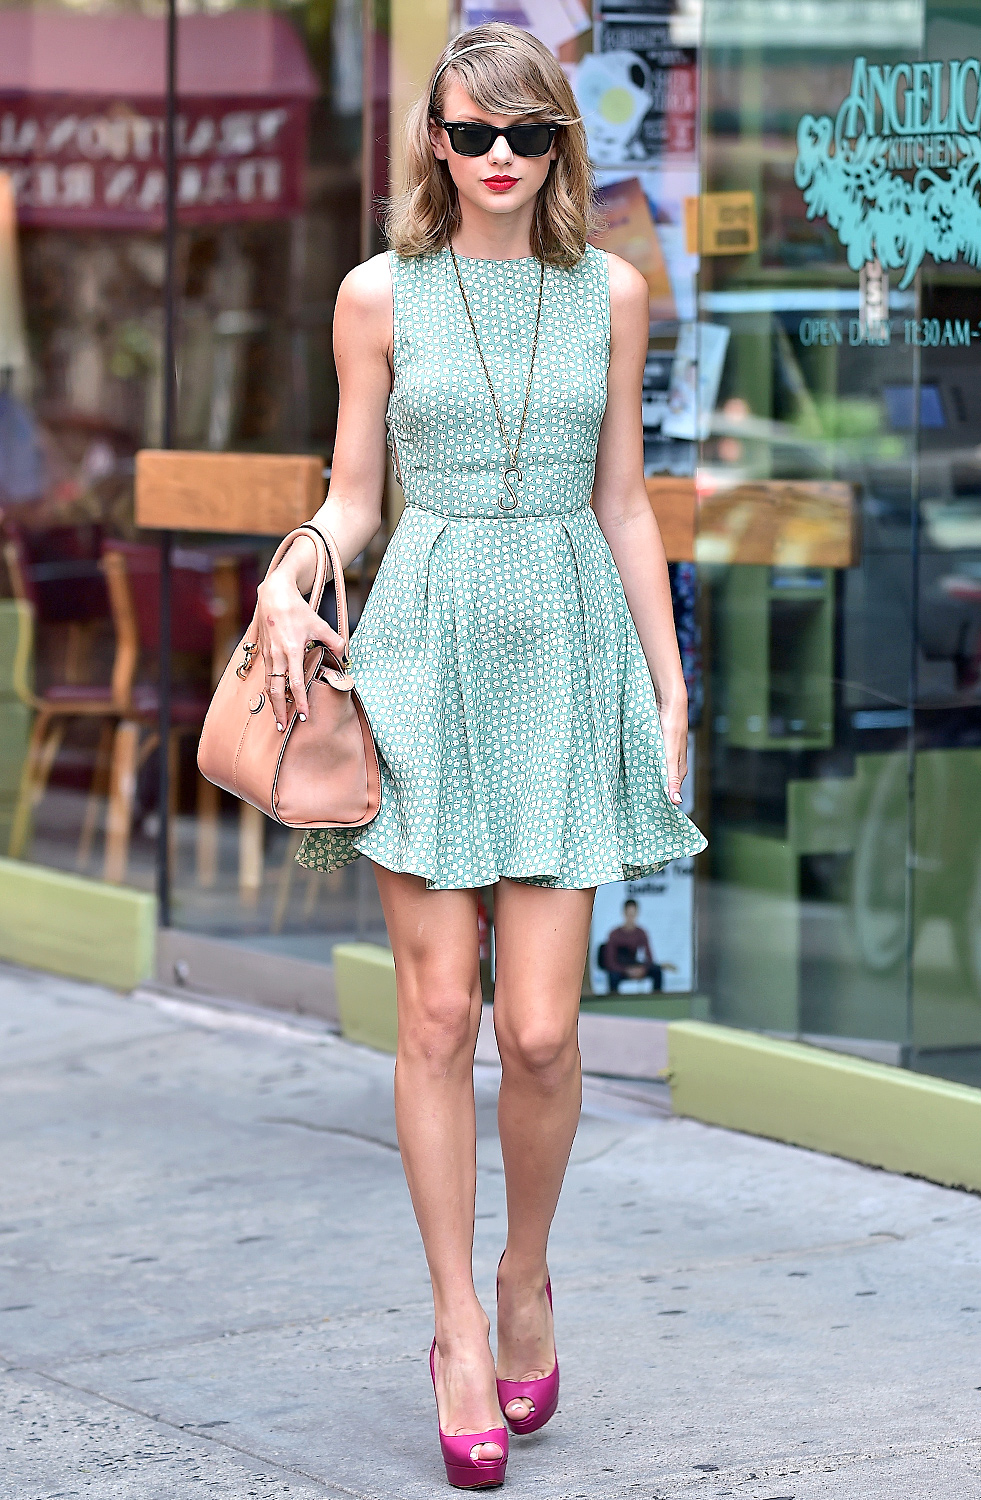 Top TV Shows, Recaps, New Movies. - Us Weekly Taylor swift decorate your own fashion